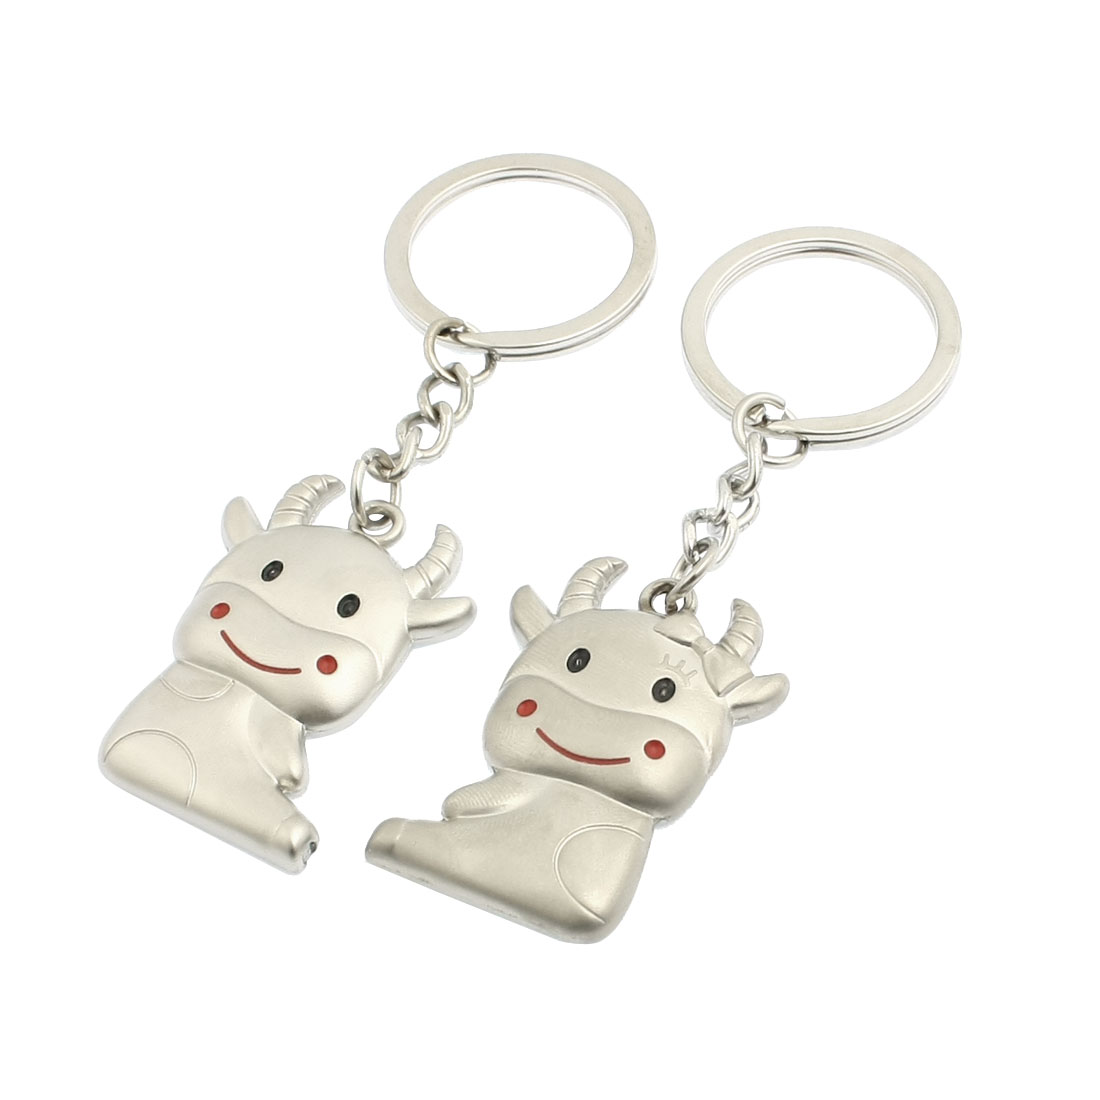 2 Pcs Cow Pendent Design Keyrings Key Holder for Lover